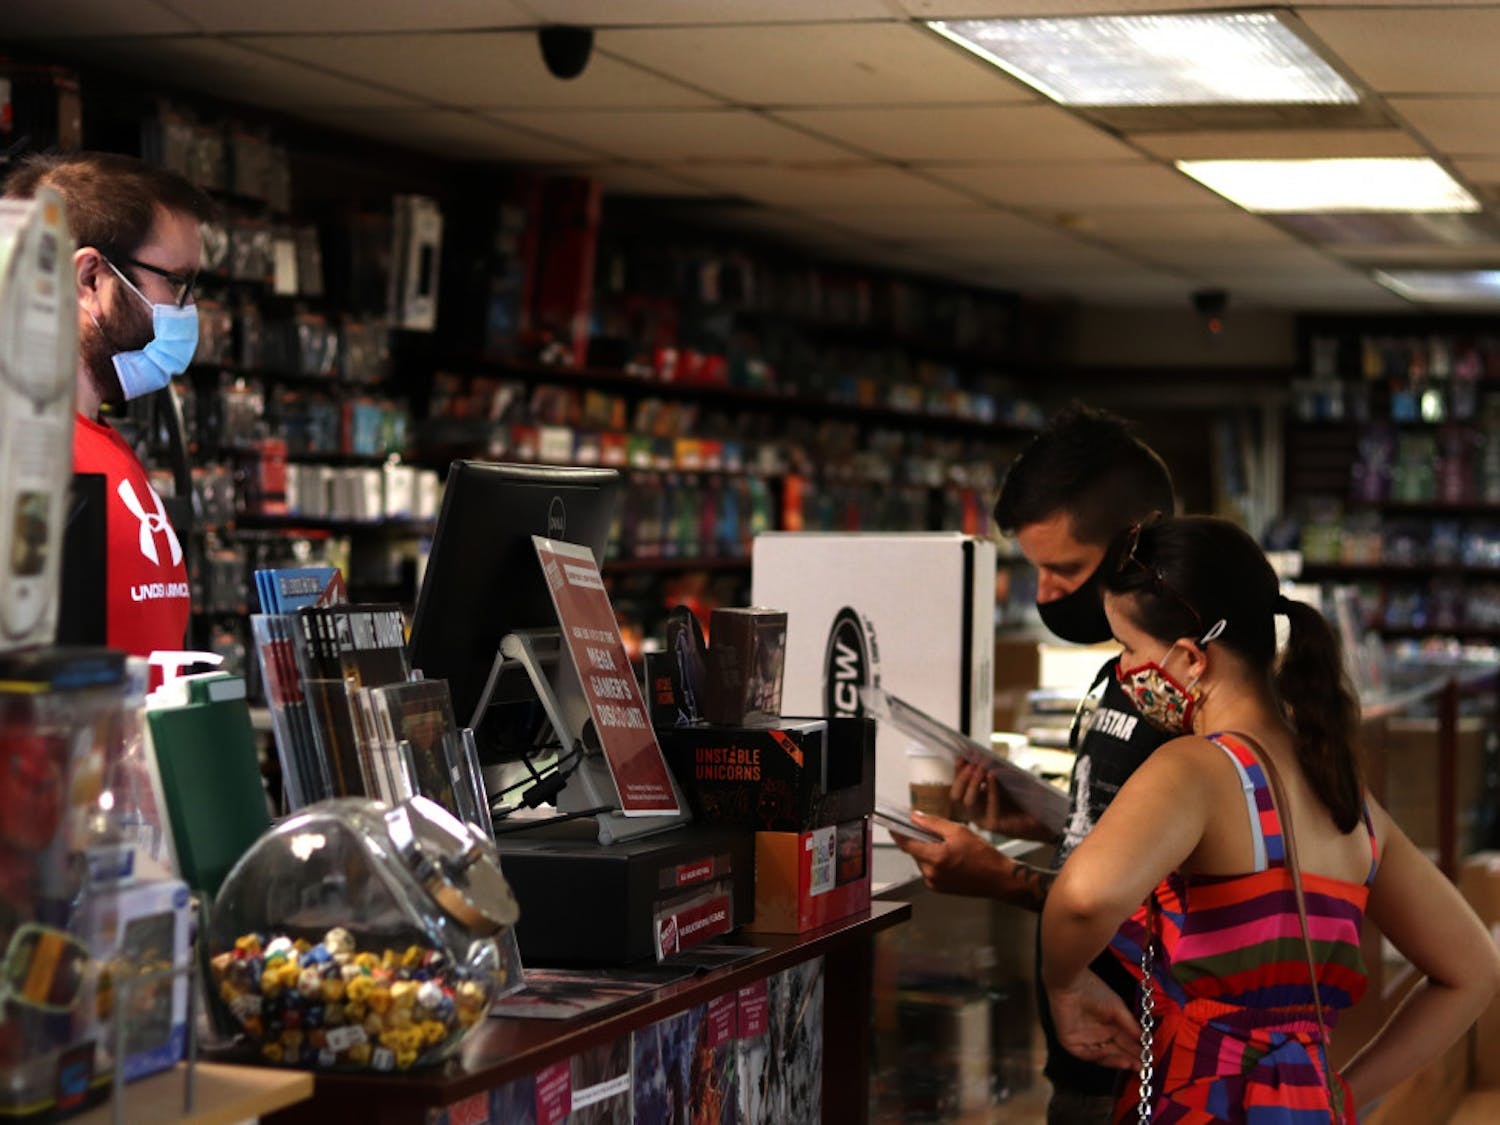 Sarah Desforges and Jared Bienlien check out at Mega Gaming & Comics in Gainesville, Fla., on September 5, 2020.